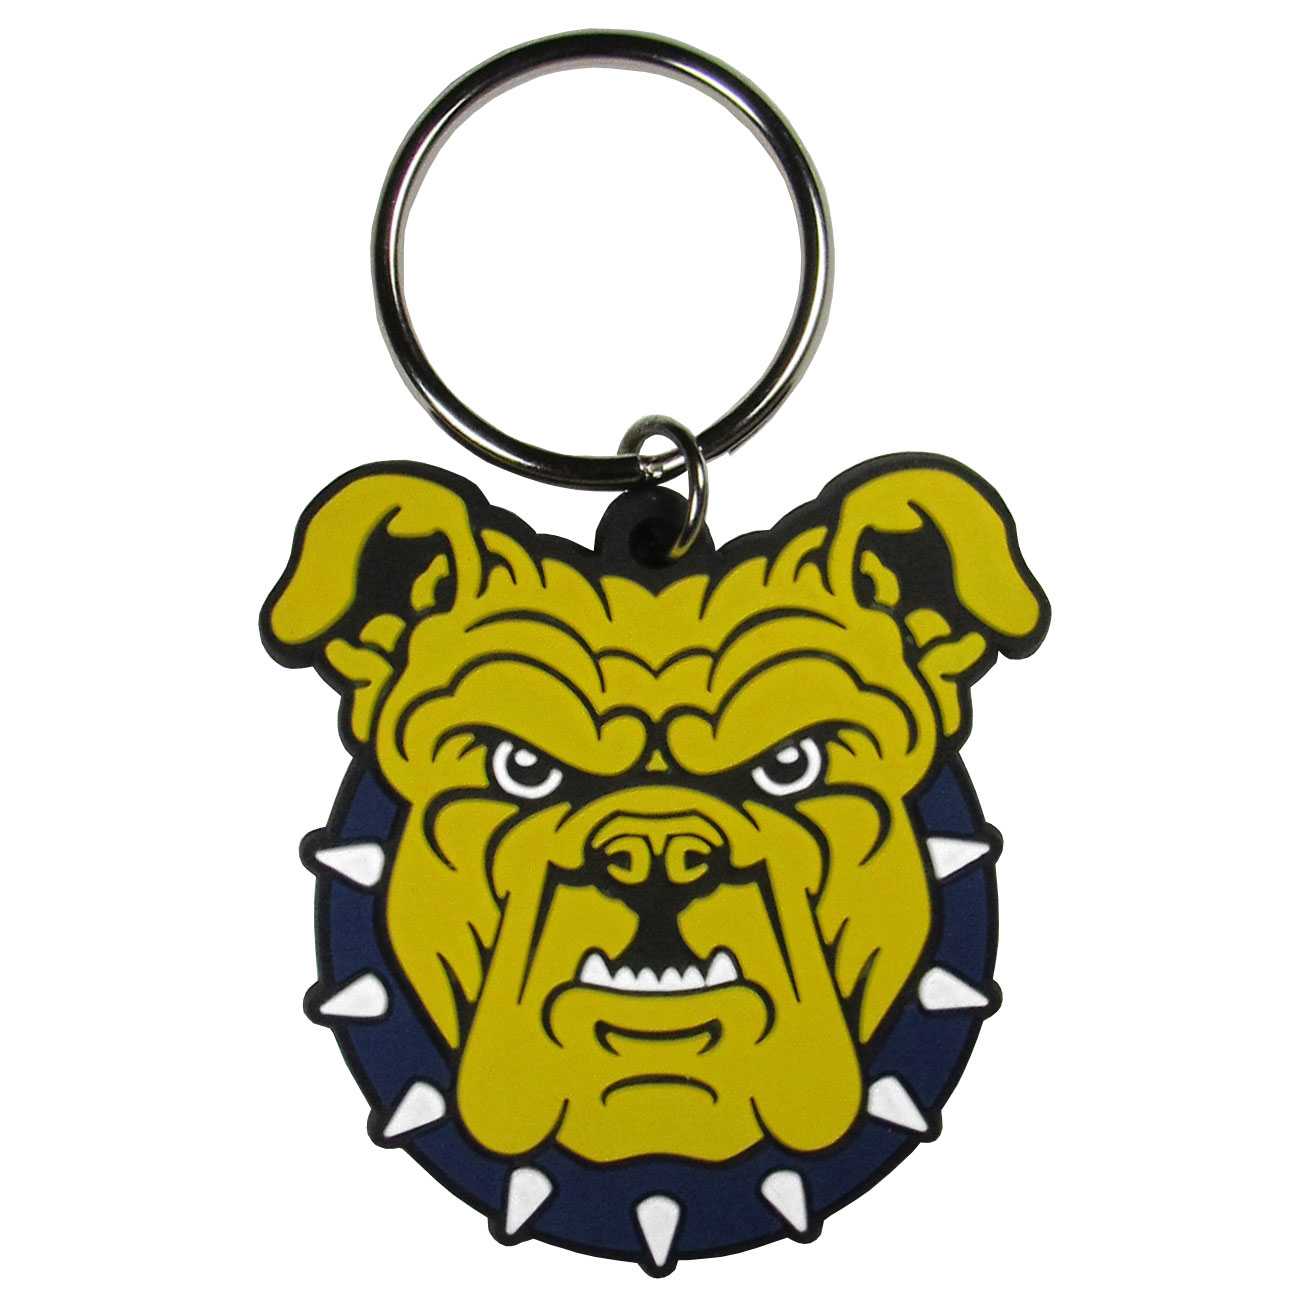 N. Carolina AandT Aggies Flex Key Chain - Our fun, flexible N. Carolina A&T Aggies key chains are made of a rubbery material that is layered to create a bright, textured logo.